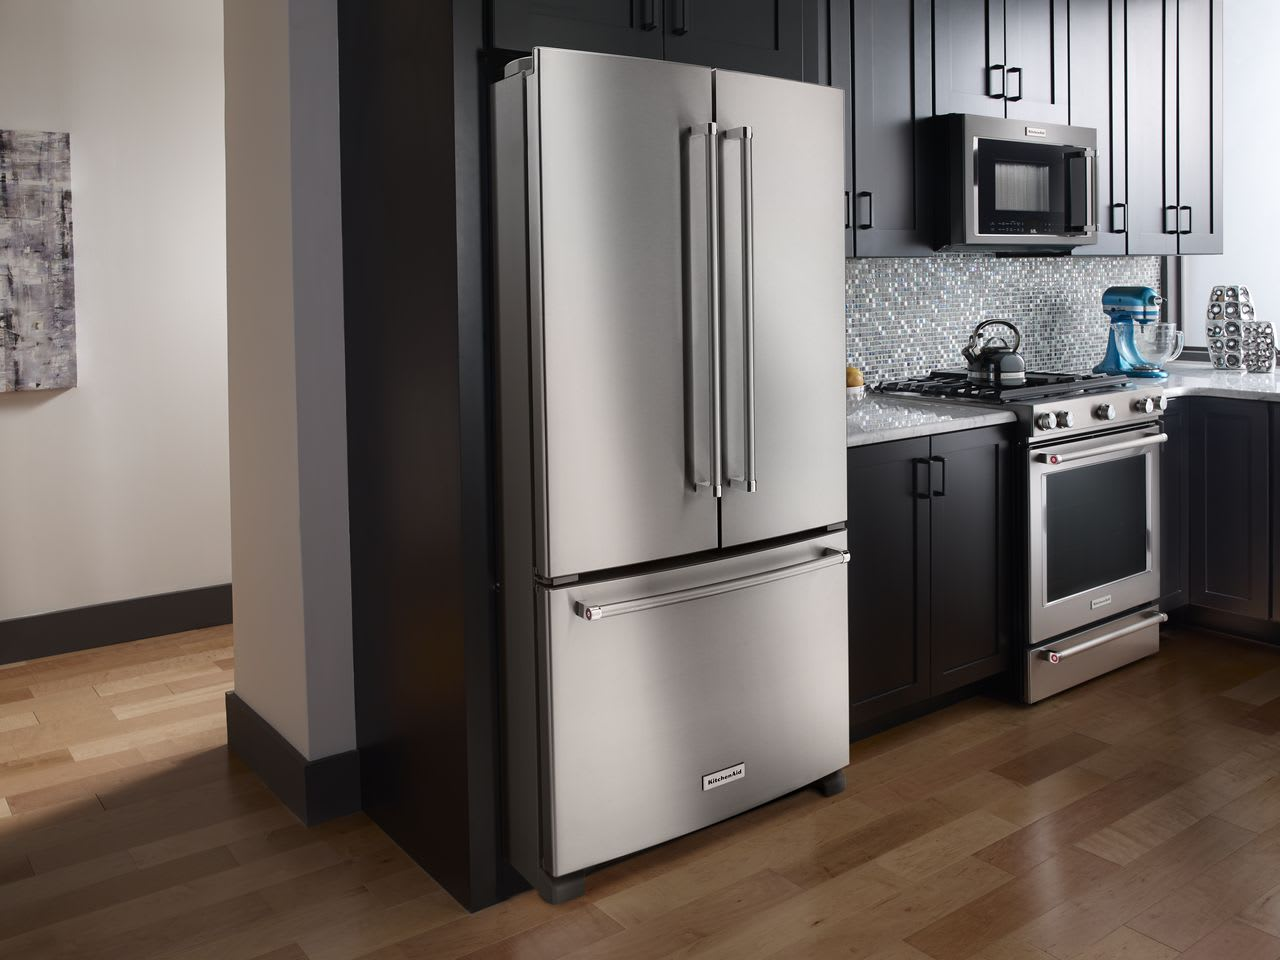 10 best refrigerators malaysia 2019 top fridge reviews brands. Black Bedroom Furniture Sets. Home Design Ideas